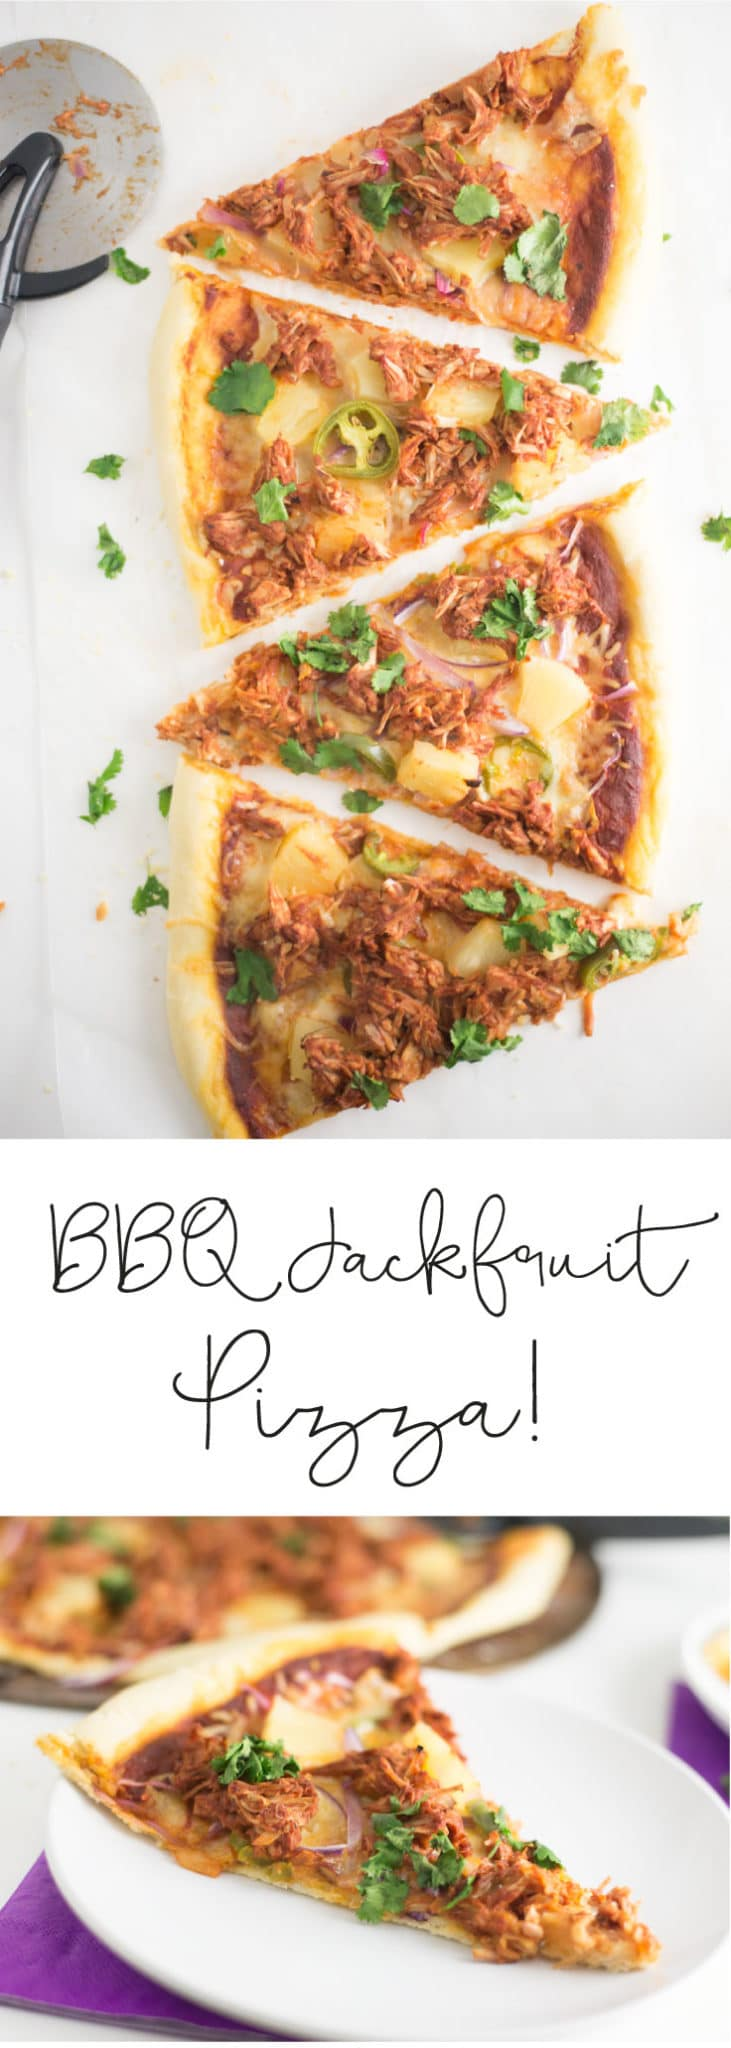 BBQ Jackfruit Pizza -- Try this vegetarian recipe for an easy weeknight meal. Substitute cheese with vegan cheese or dough with a gluten free recipe and you have yourself a vegan or gluten free meal! | mindfulavocado